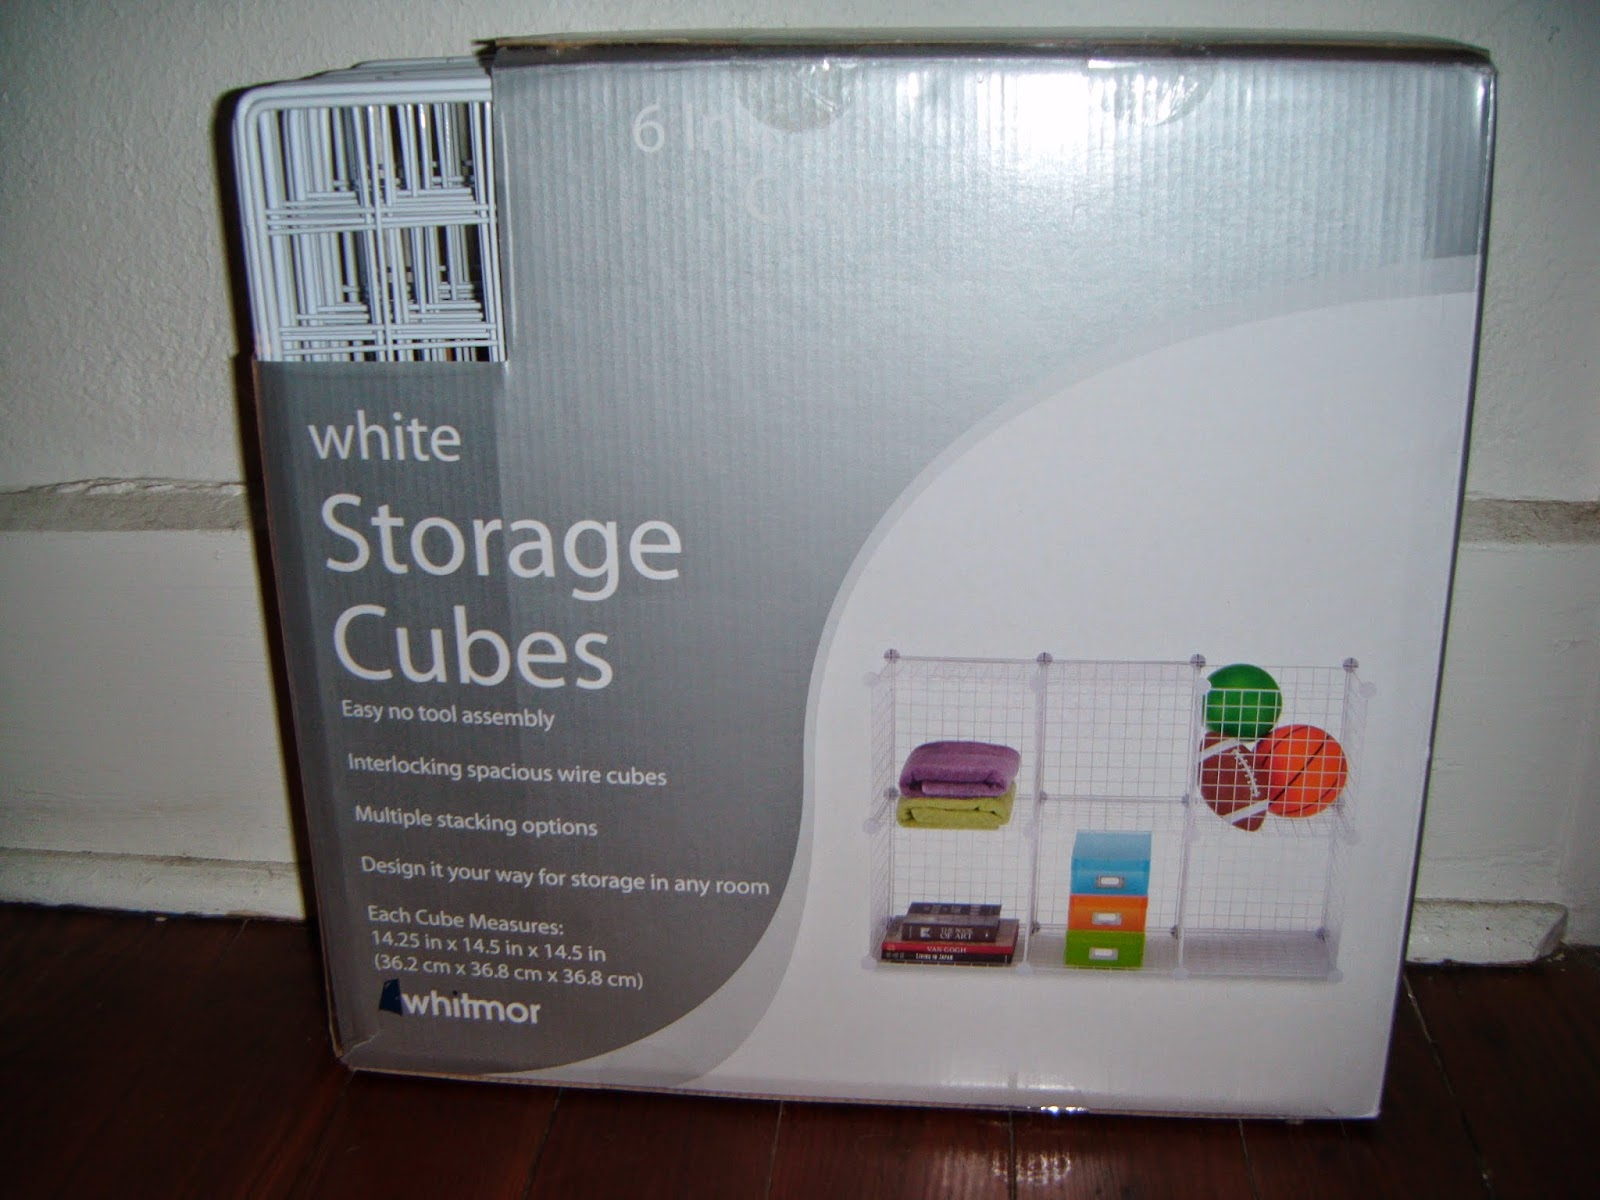 The Whitmor Wire Storage Cubes allow you to create your own storage  solutions based on your specific needs. They